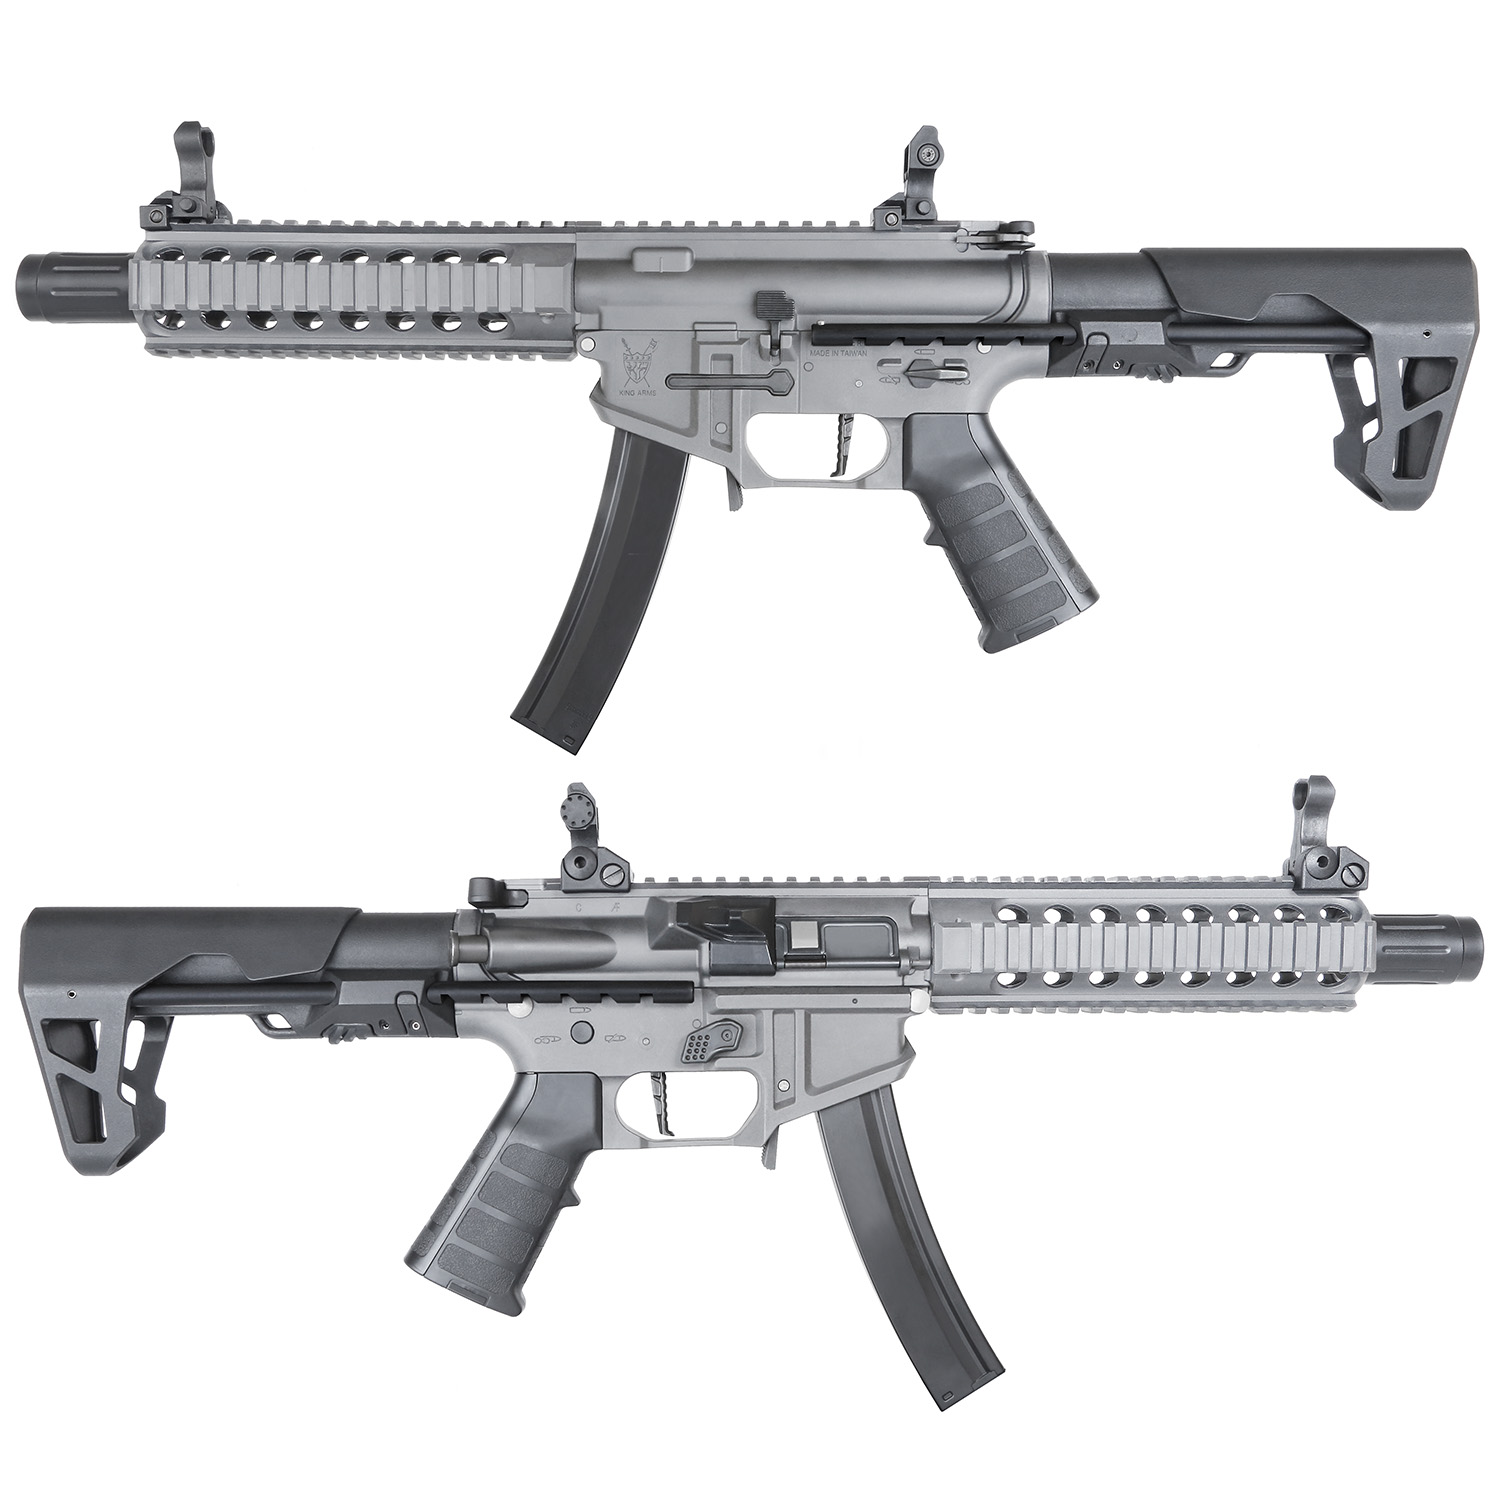 King Arms PDW 9mm SBR Long AEG Rifle - Gun Metal Grey